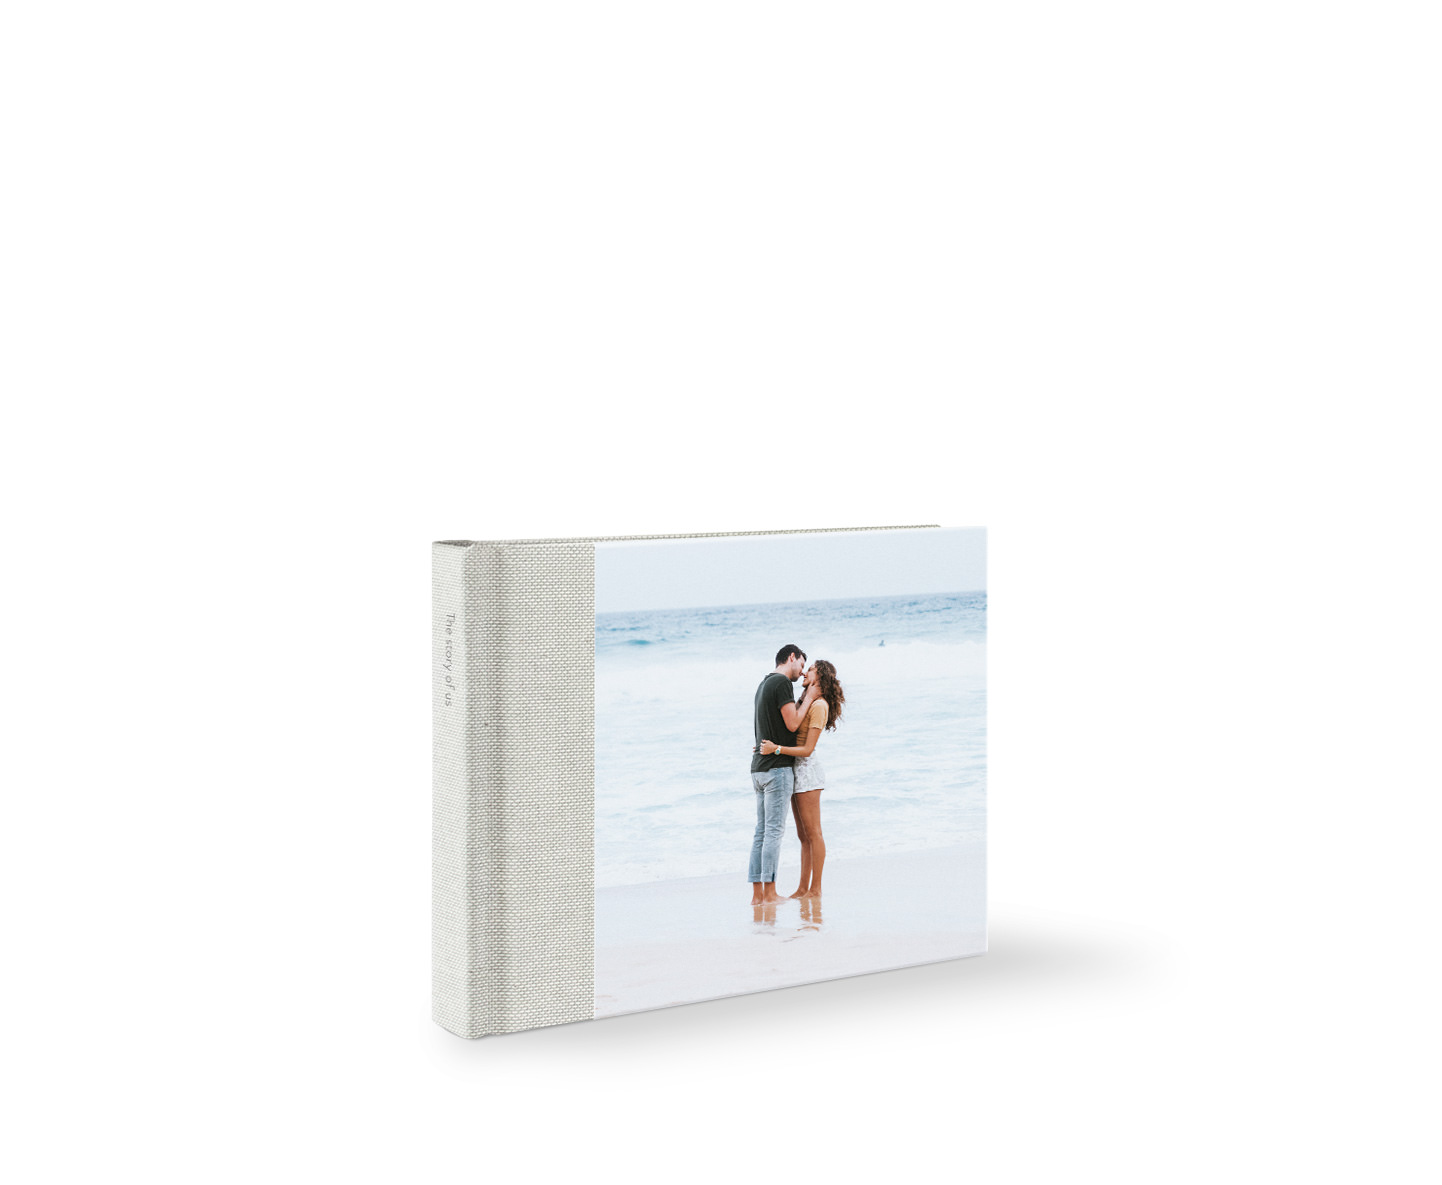 Medium Premium Photo Book with couple on the cover.